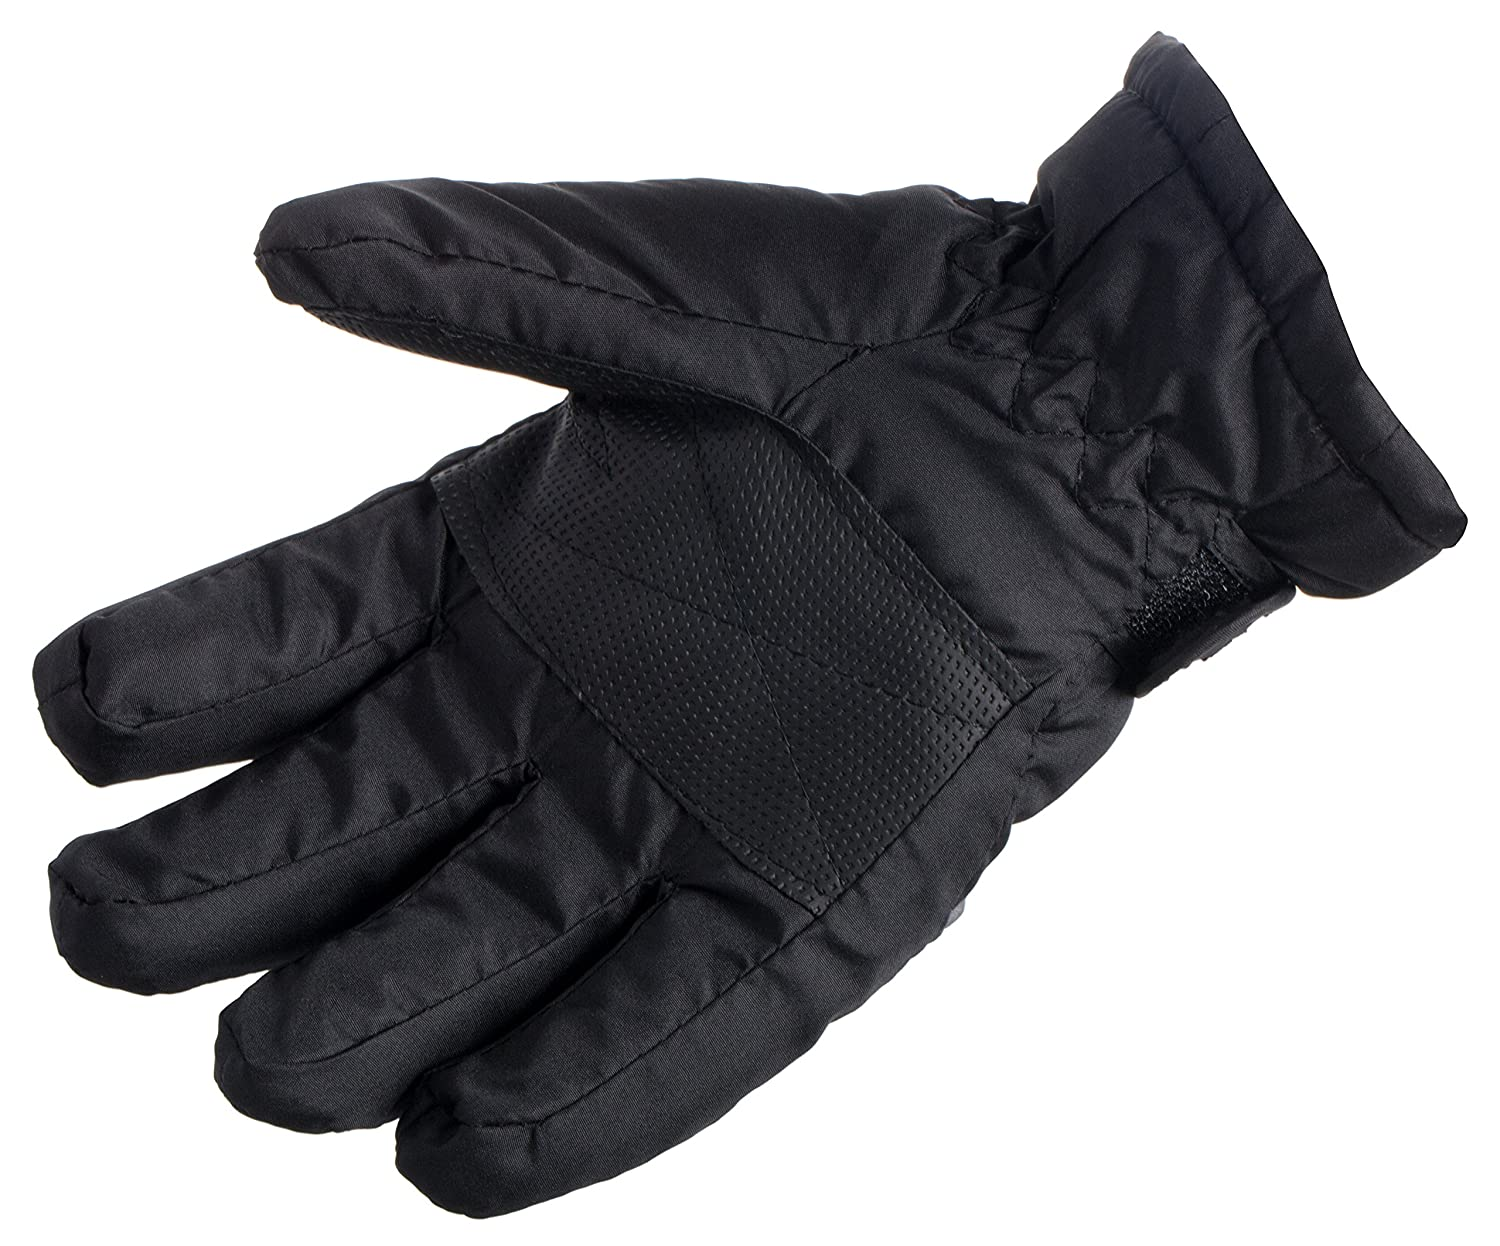 Kids Youth Teens Ski Gloves Cold Weather Waterproof 3M Lined Girls Boys Gloves